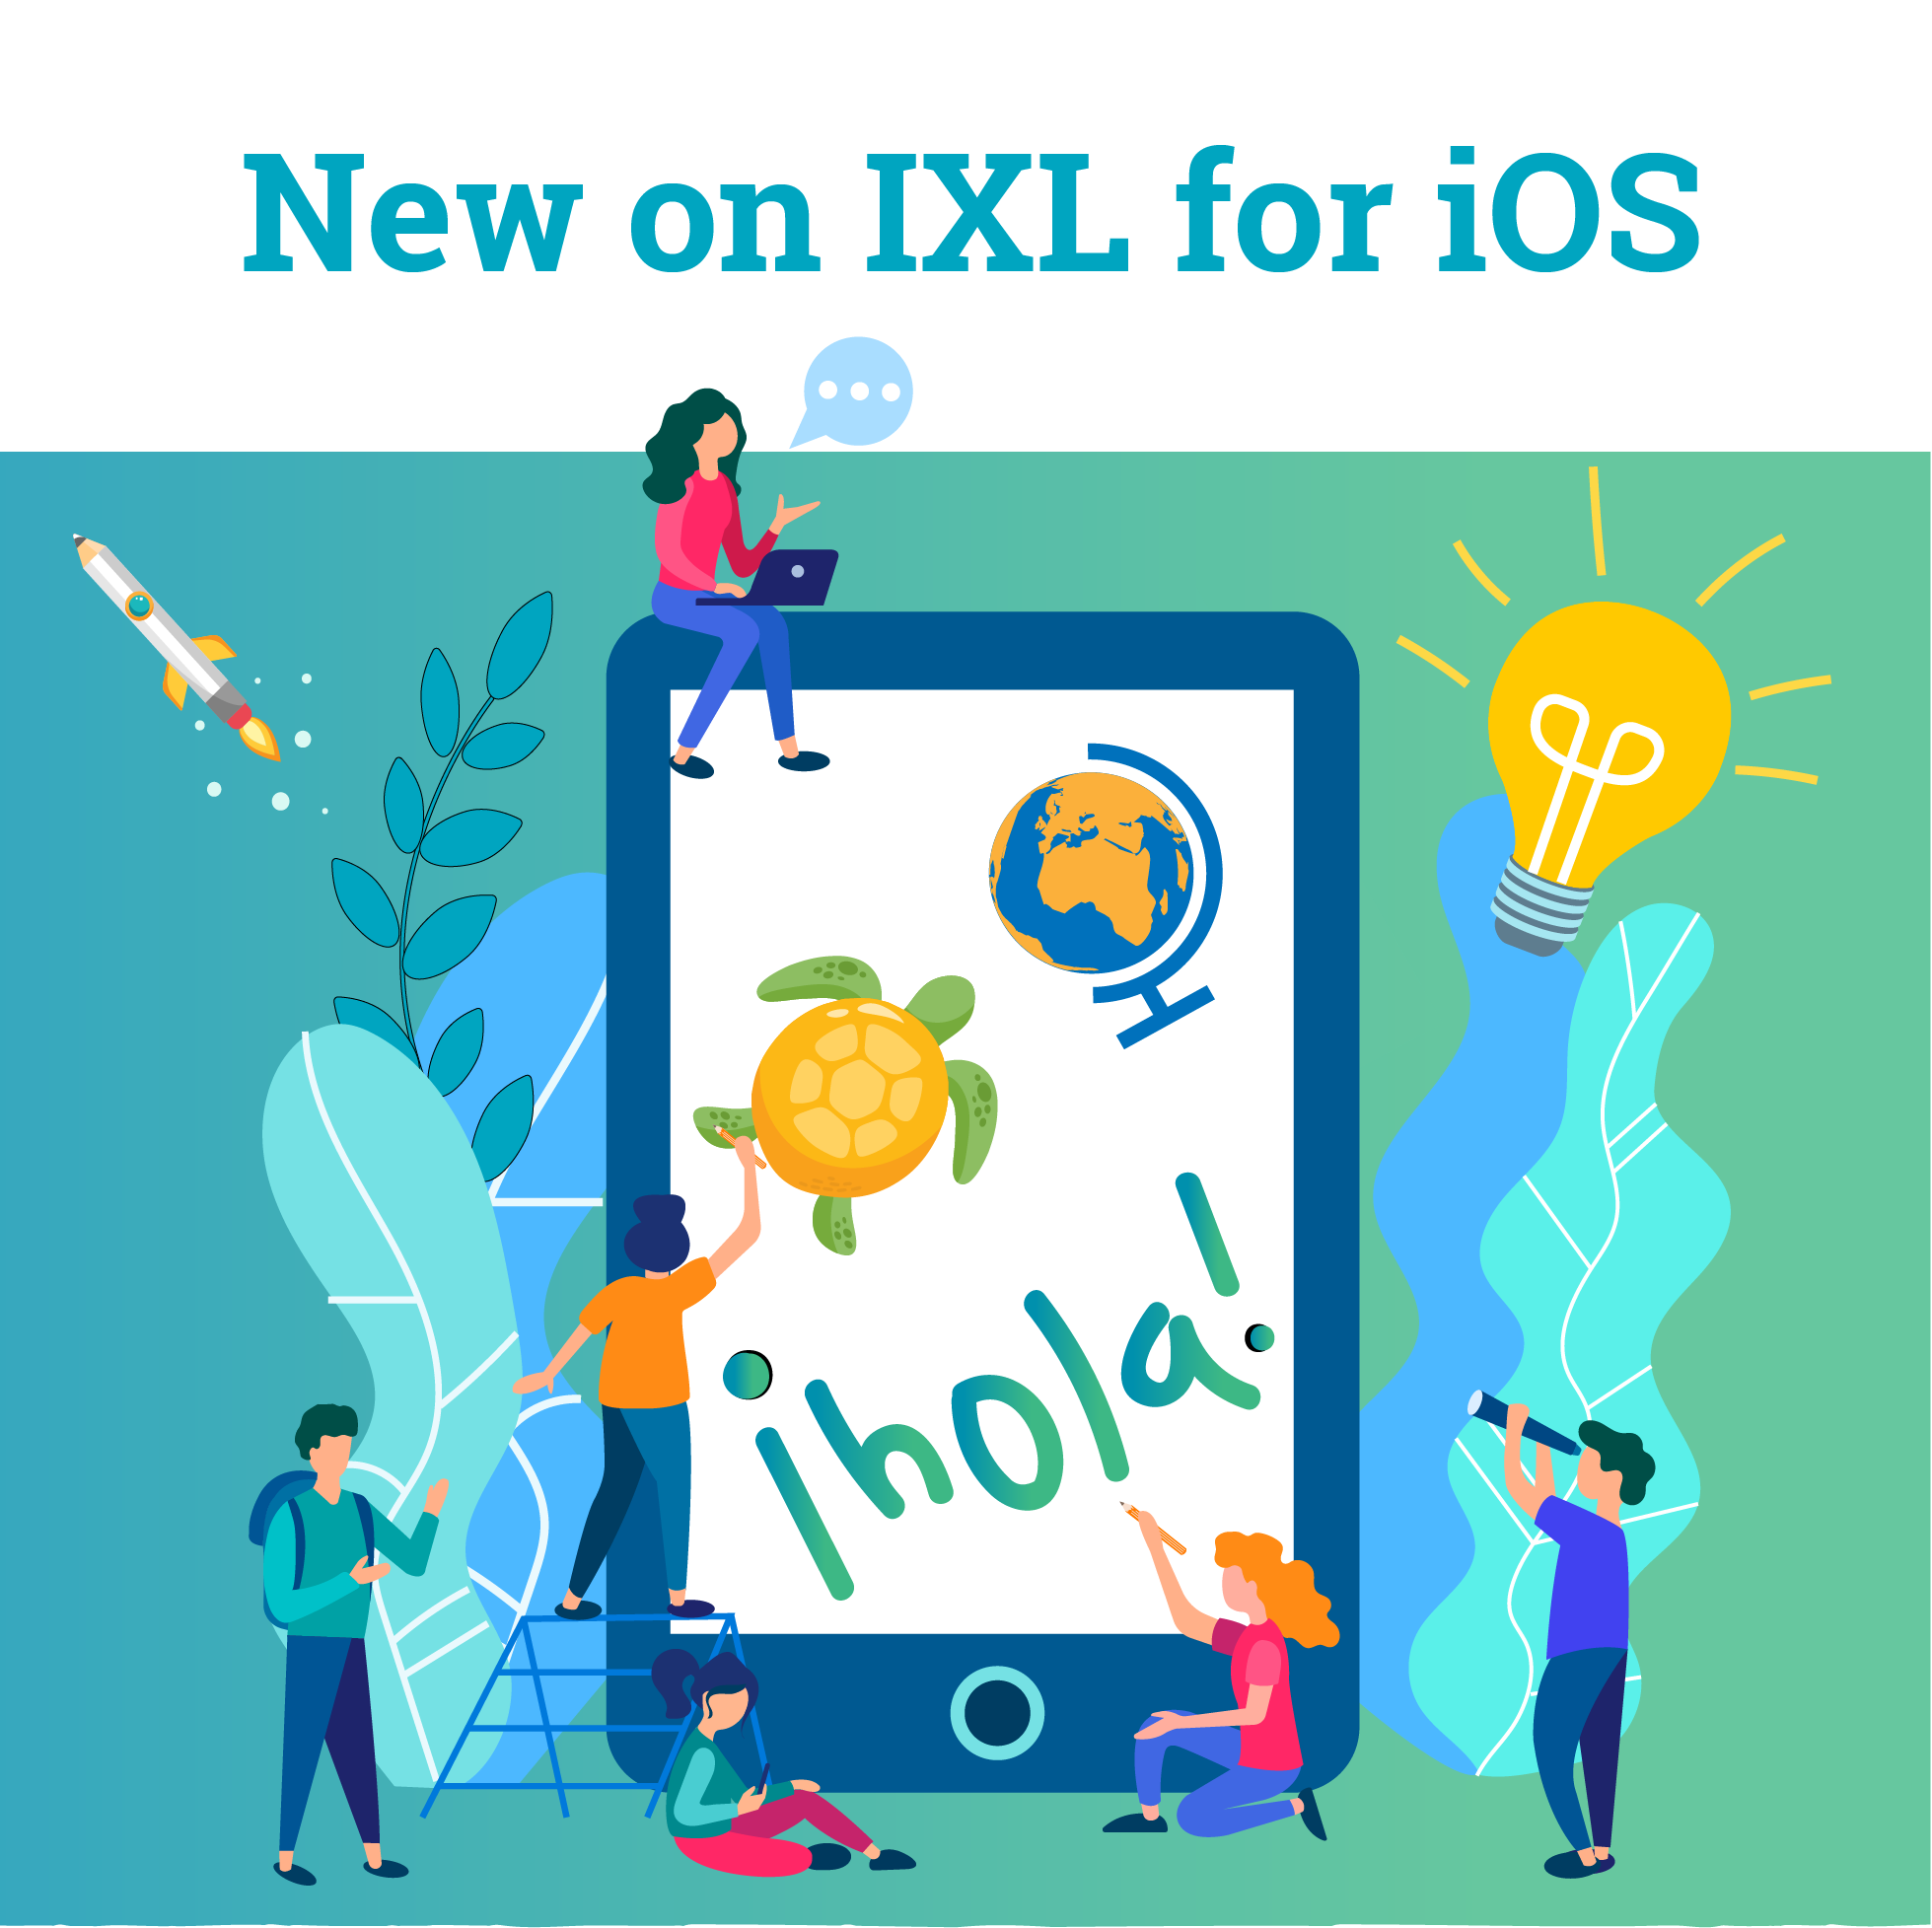 Exciting updates to IXL for iOS